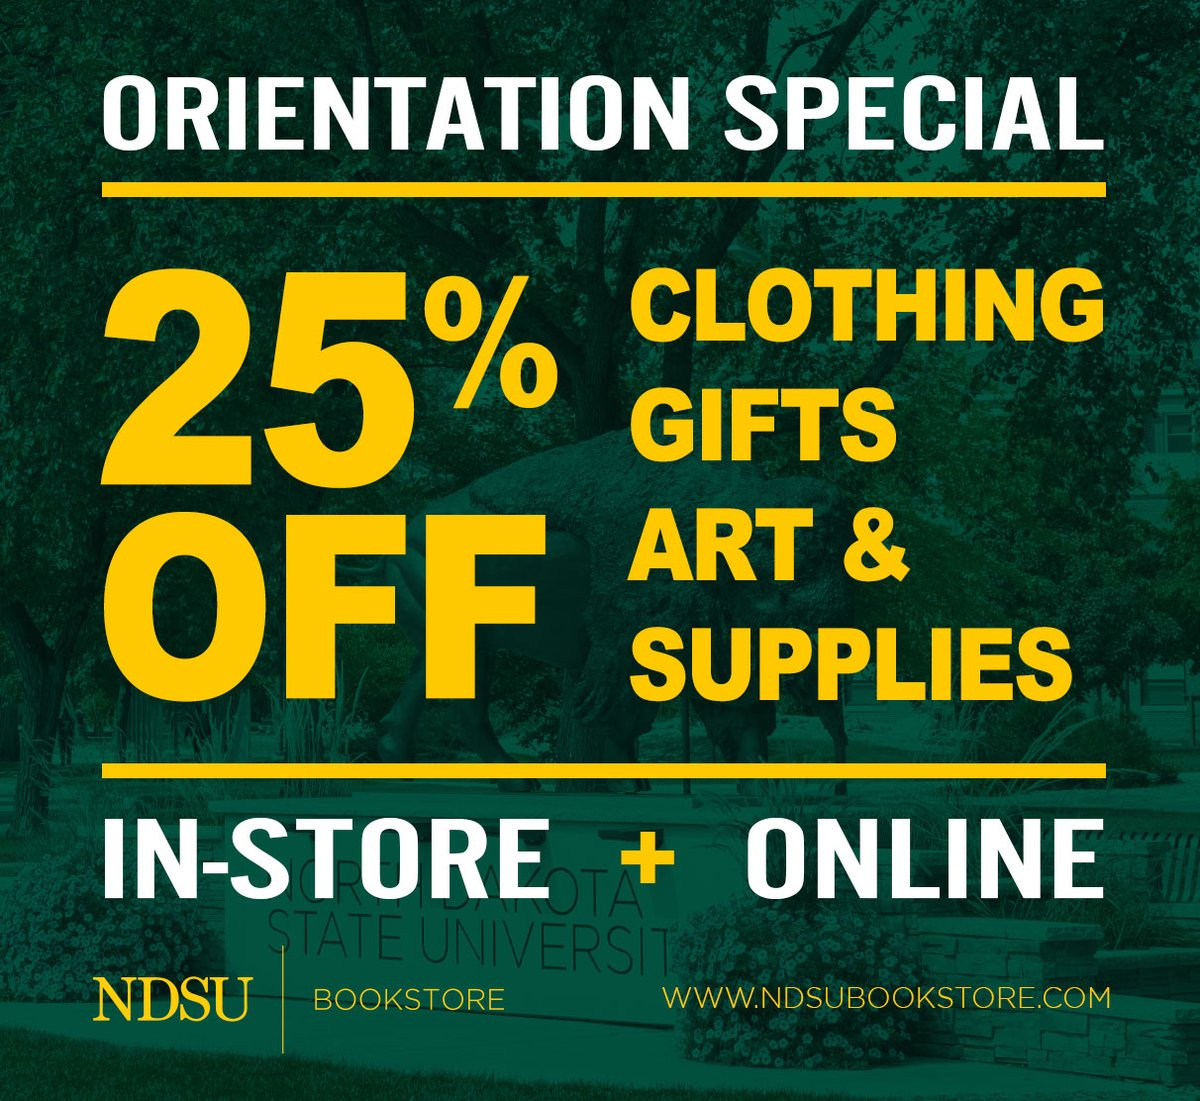 The NDSU Bookstore will be hosting an Orientation Sale in-store and online today, Tuesday, July 28. Enjoy 25% off NDSU clothing, gifts and art & supply items.  https://t.co/PynWwZBHLi  #NDSU #HelloGreenAndYellow https://t.co/1ZTp7VaplL